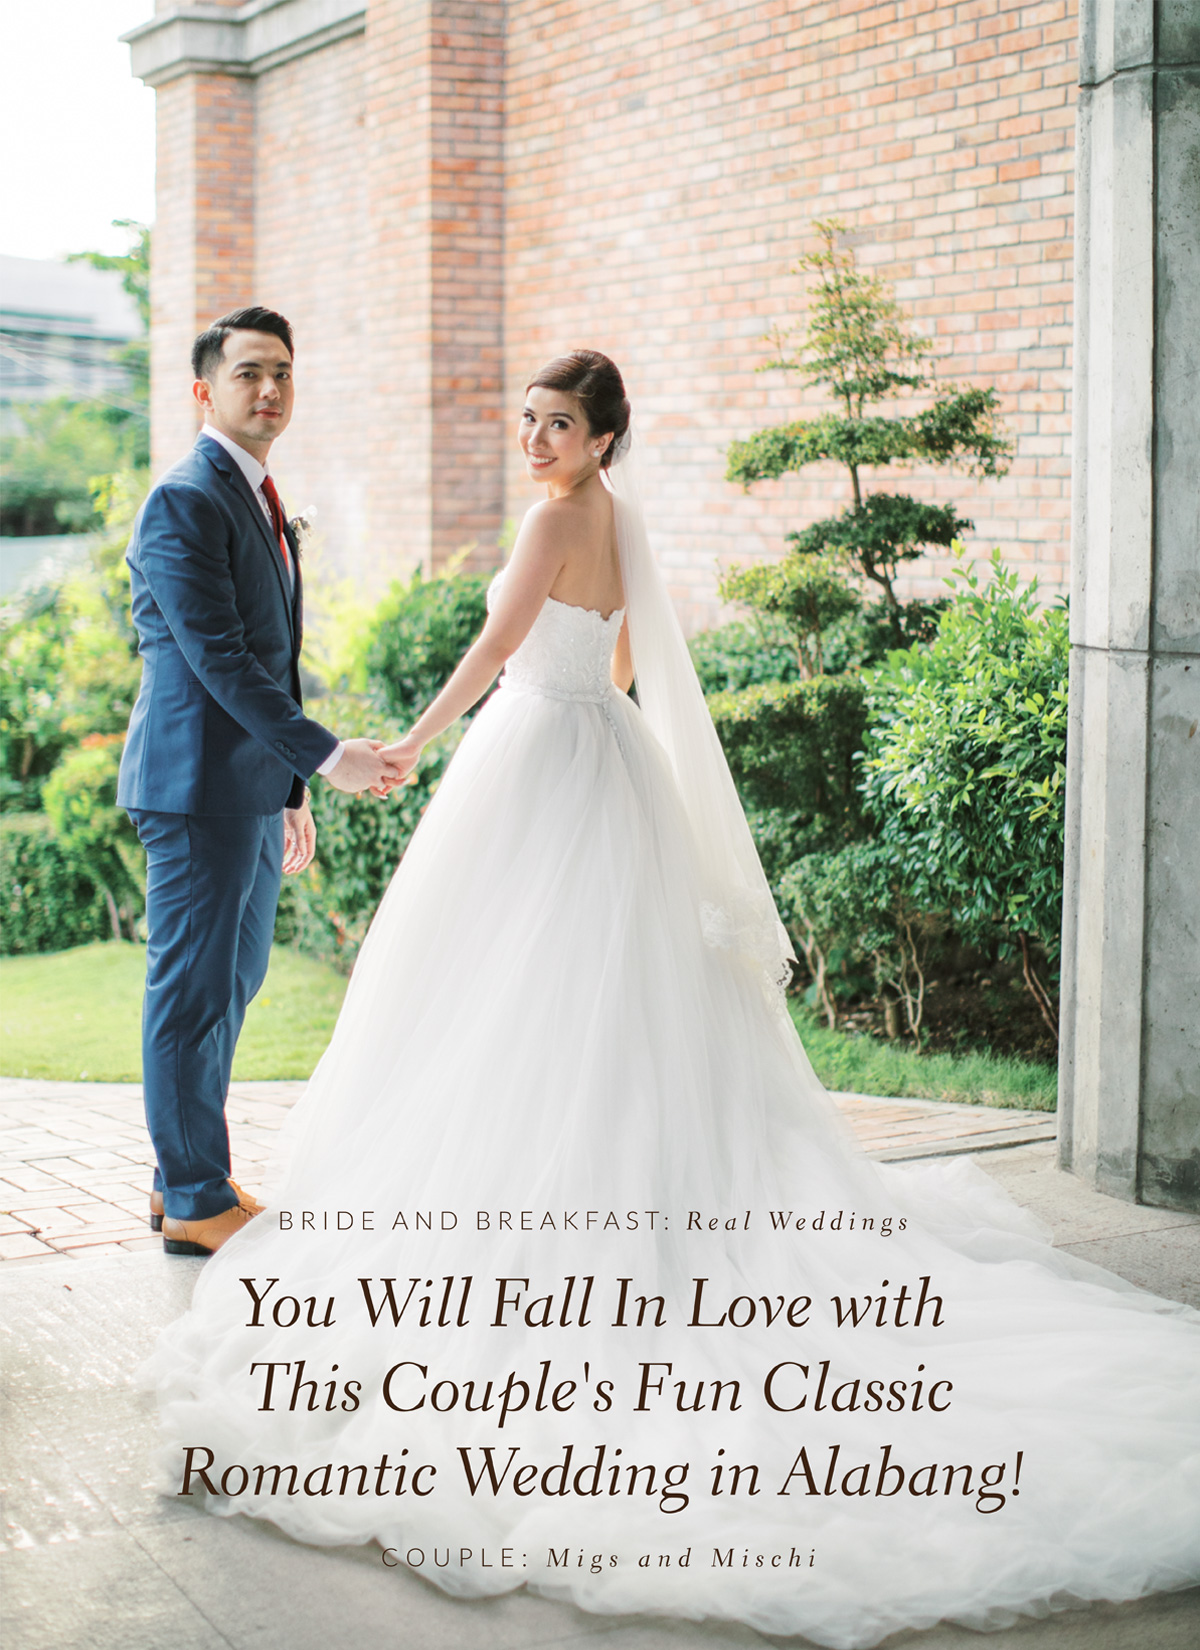 You Will Fall In Love with This Couple's Fun Classic Romantic Wedding in Alabang!